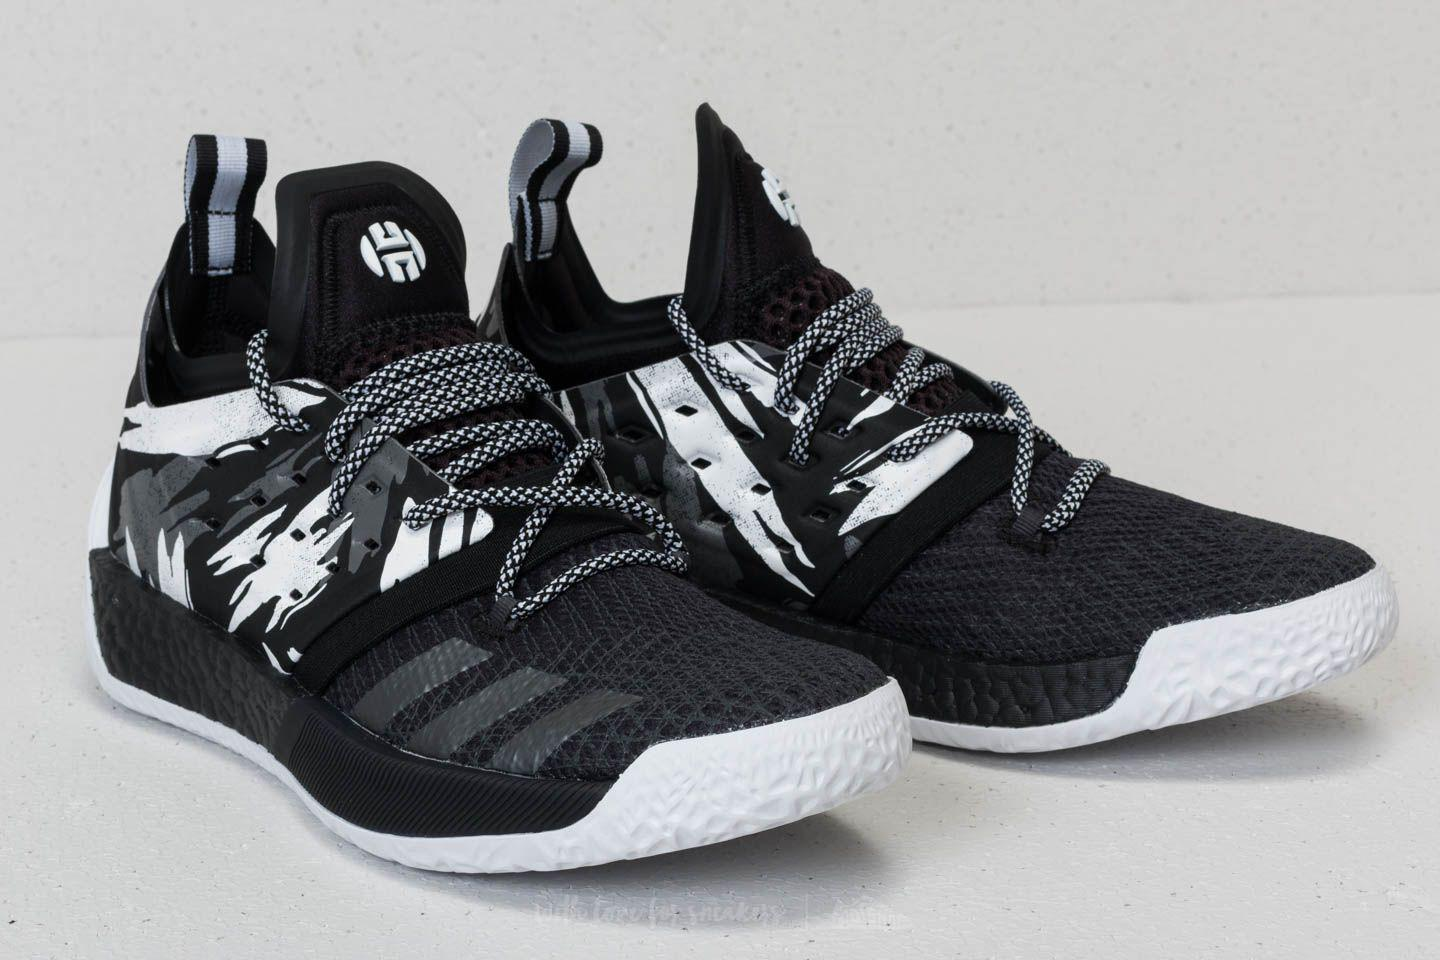 new arrival d944e 979ad Lyst Foot Adidas Harden Vol 2 Core Black White Grey For Men